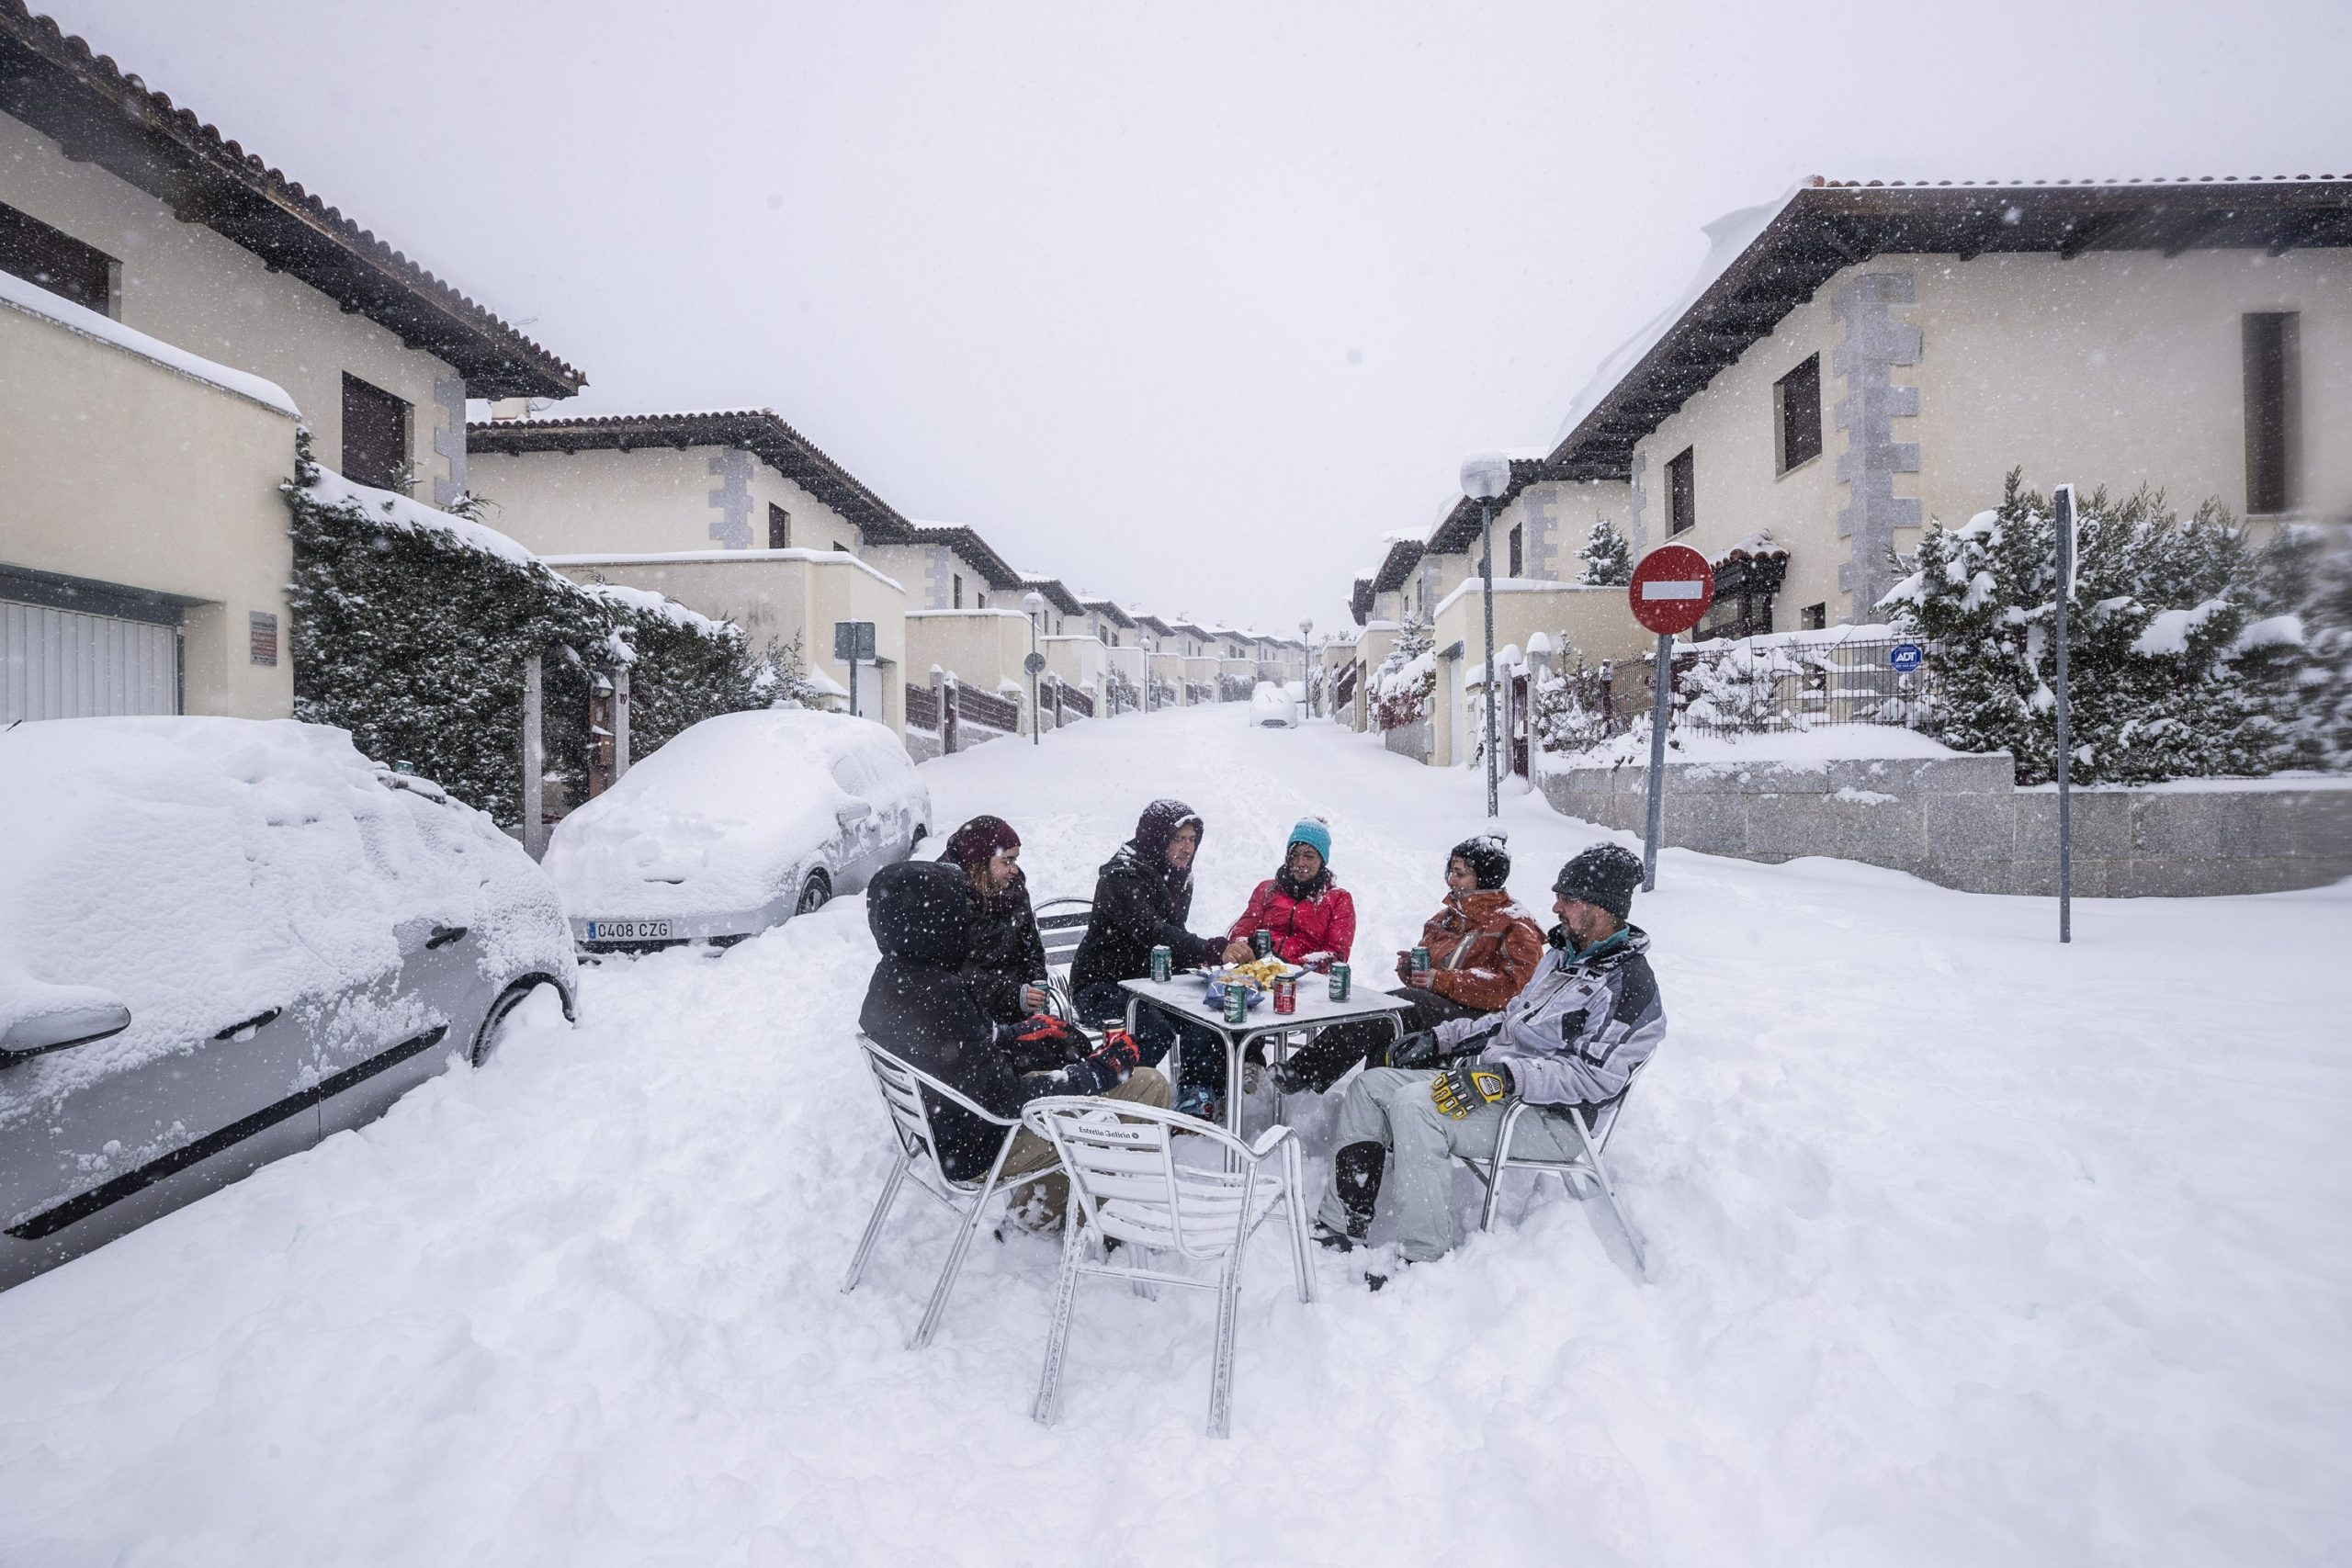 An unusual snow kills 4 people and stops most of Spain